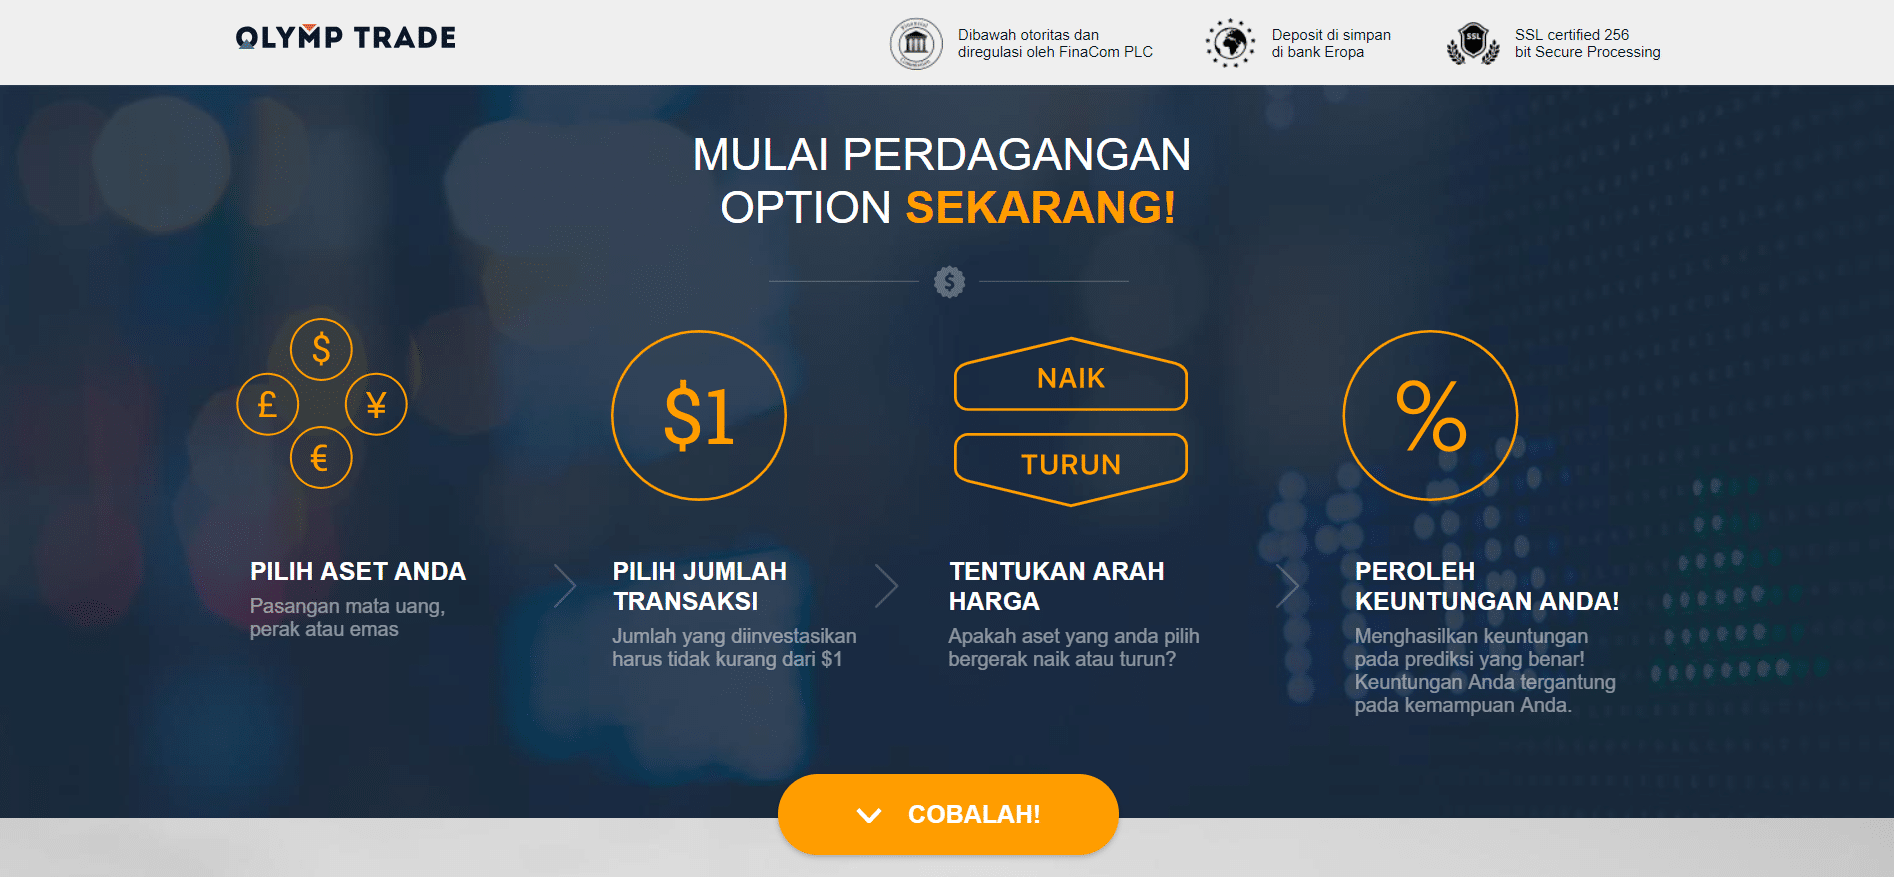 indonesia olymp trade